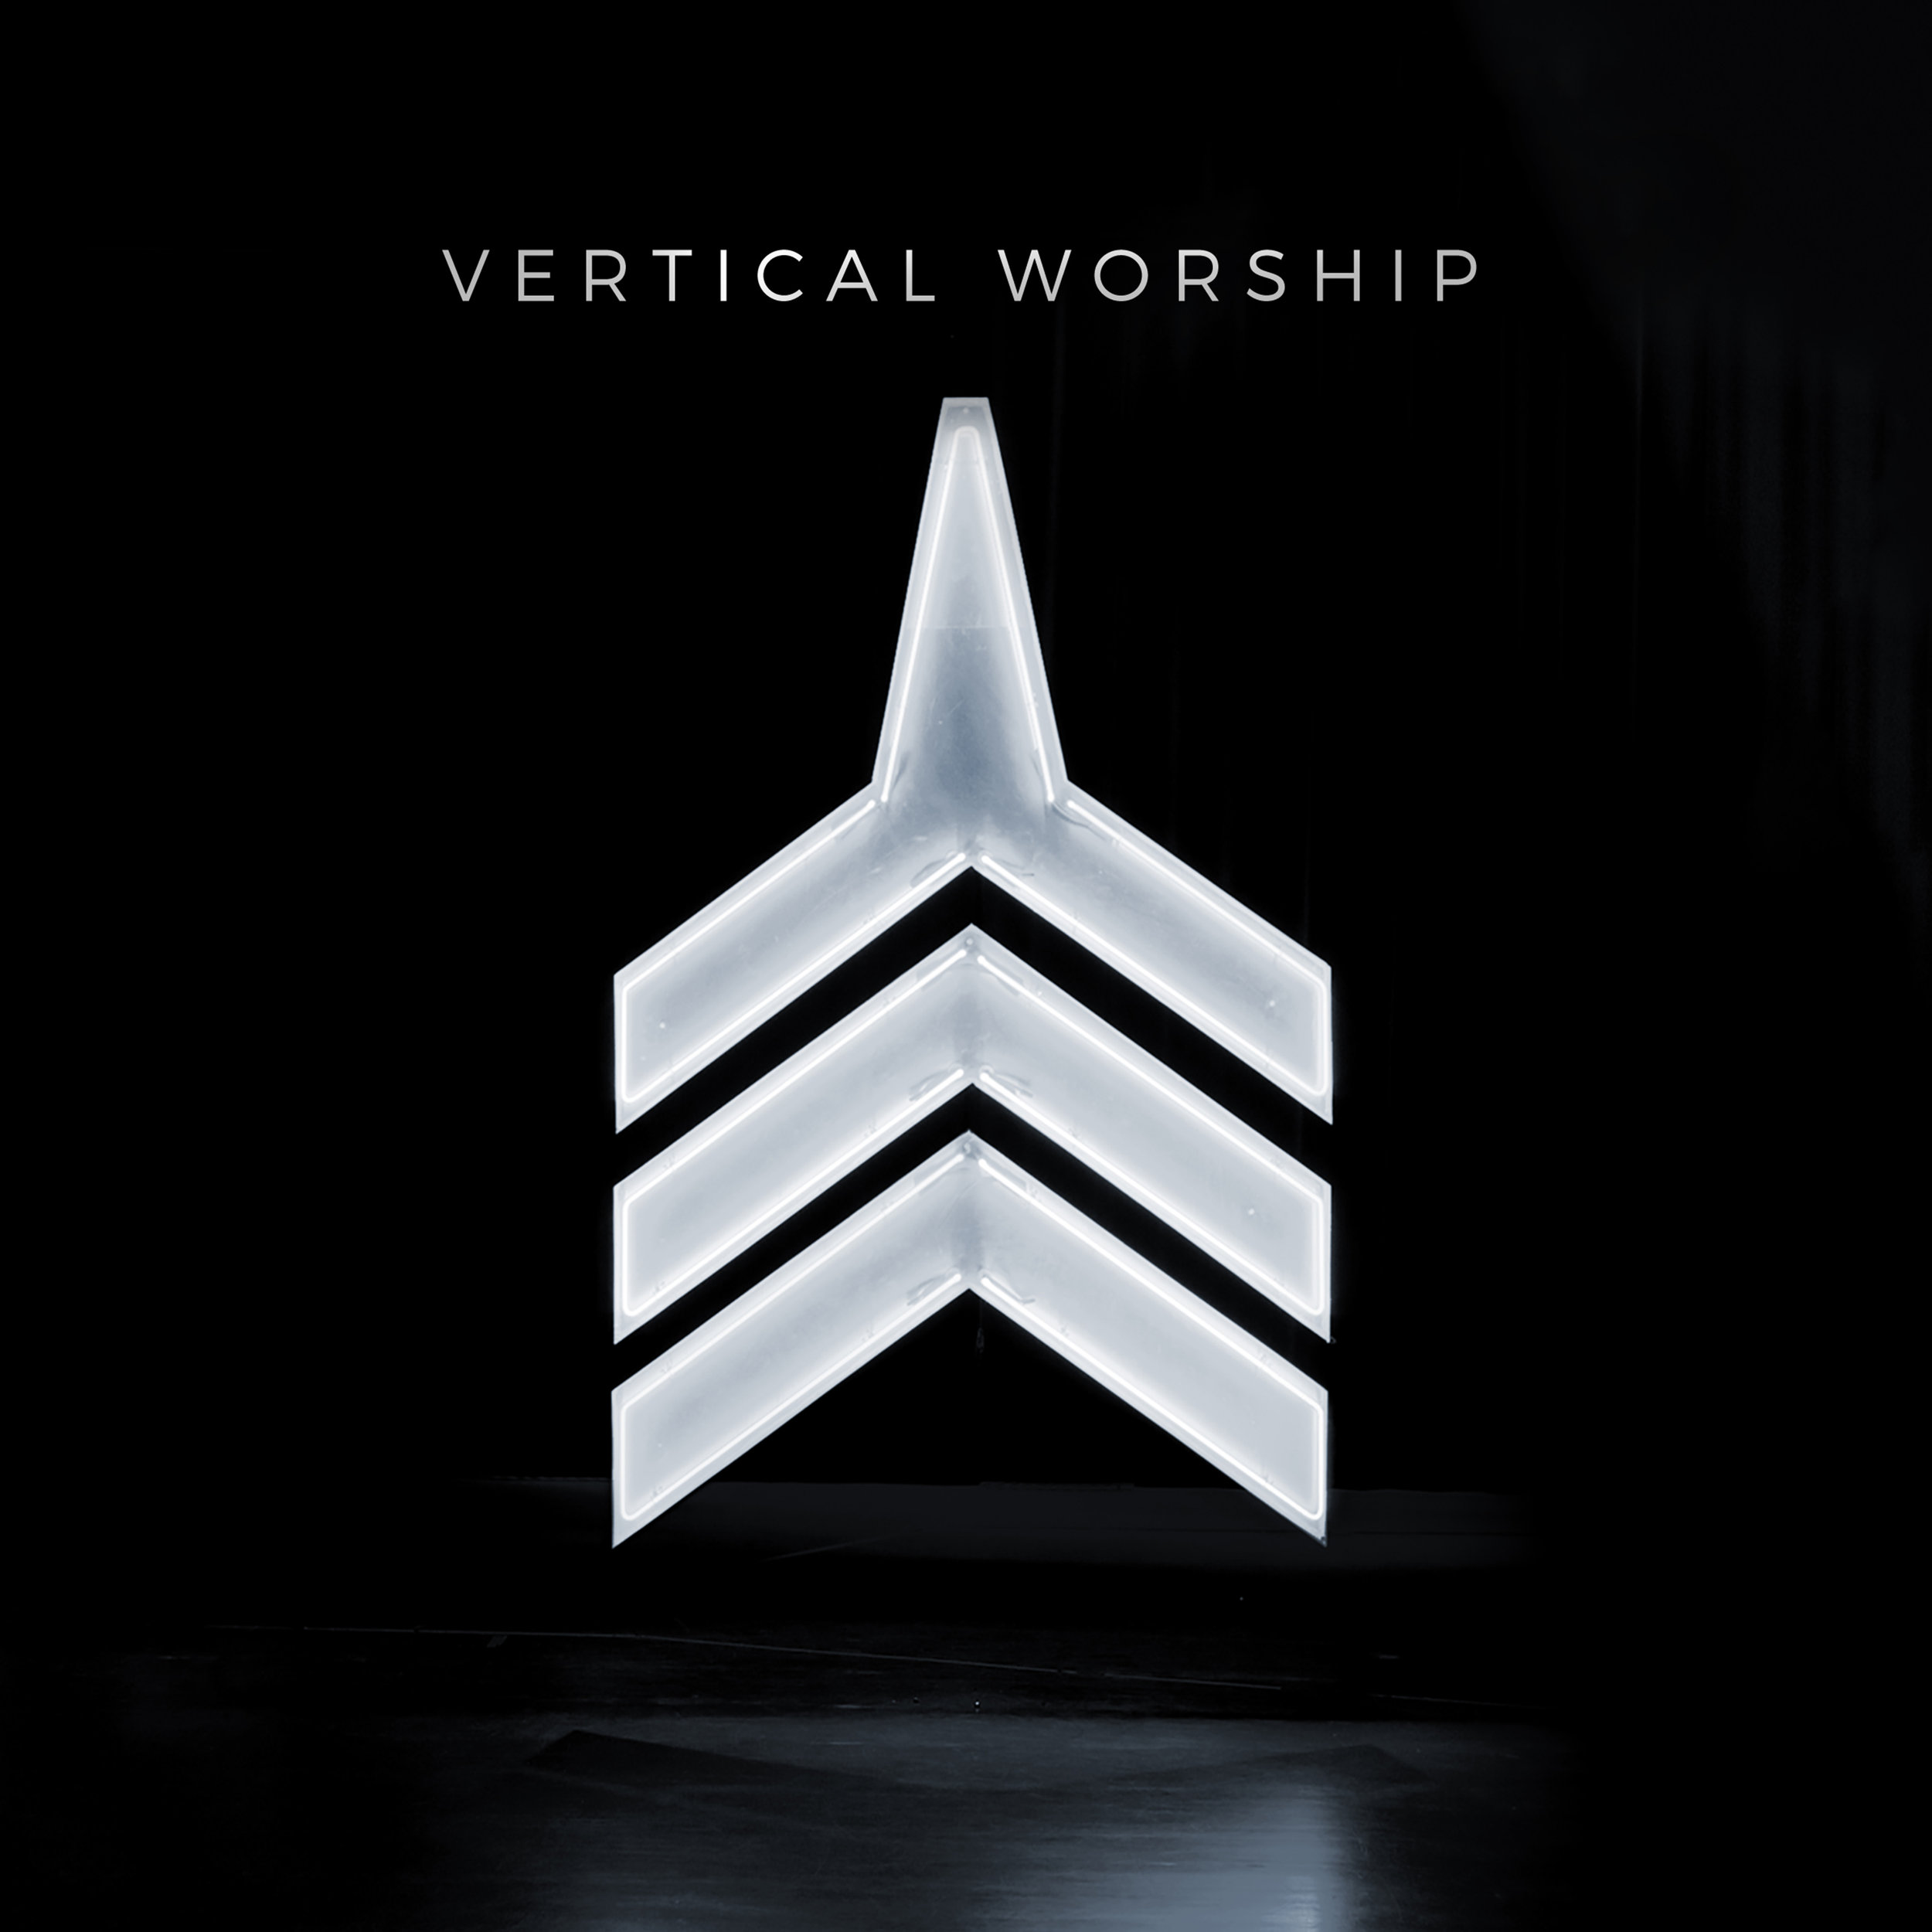 Vertical Worship - Vertical Worship.jpg